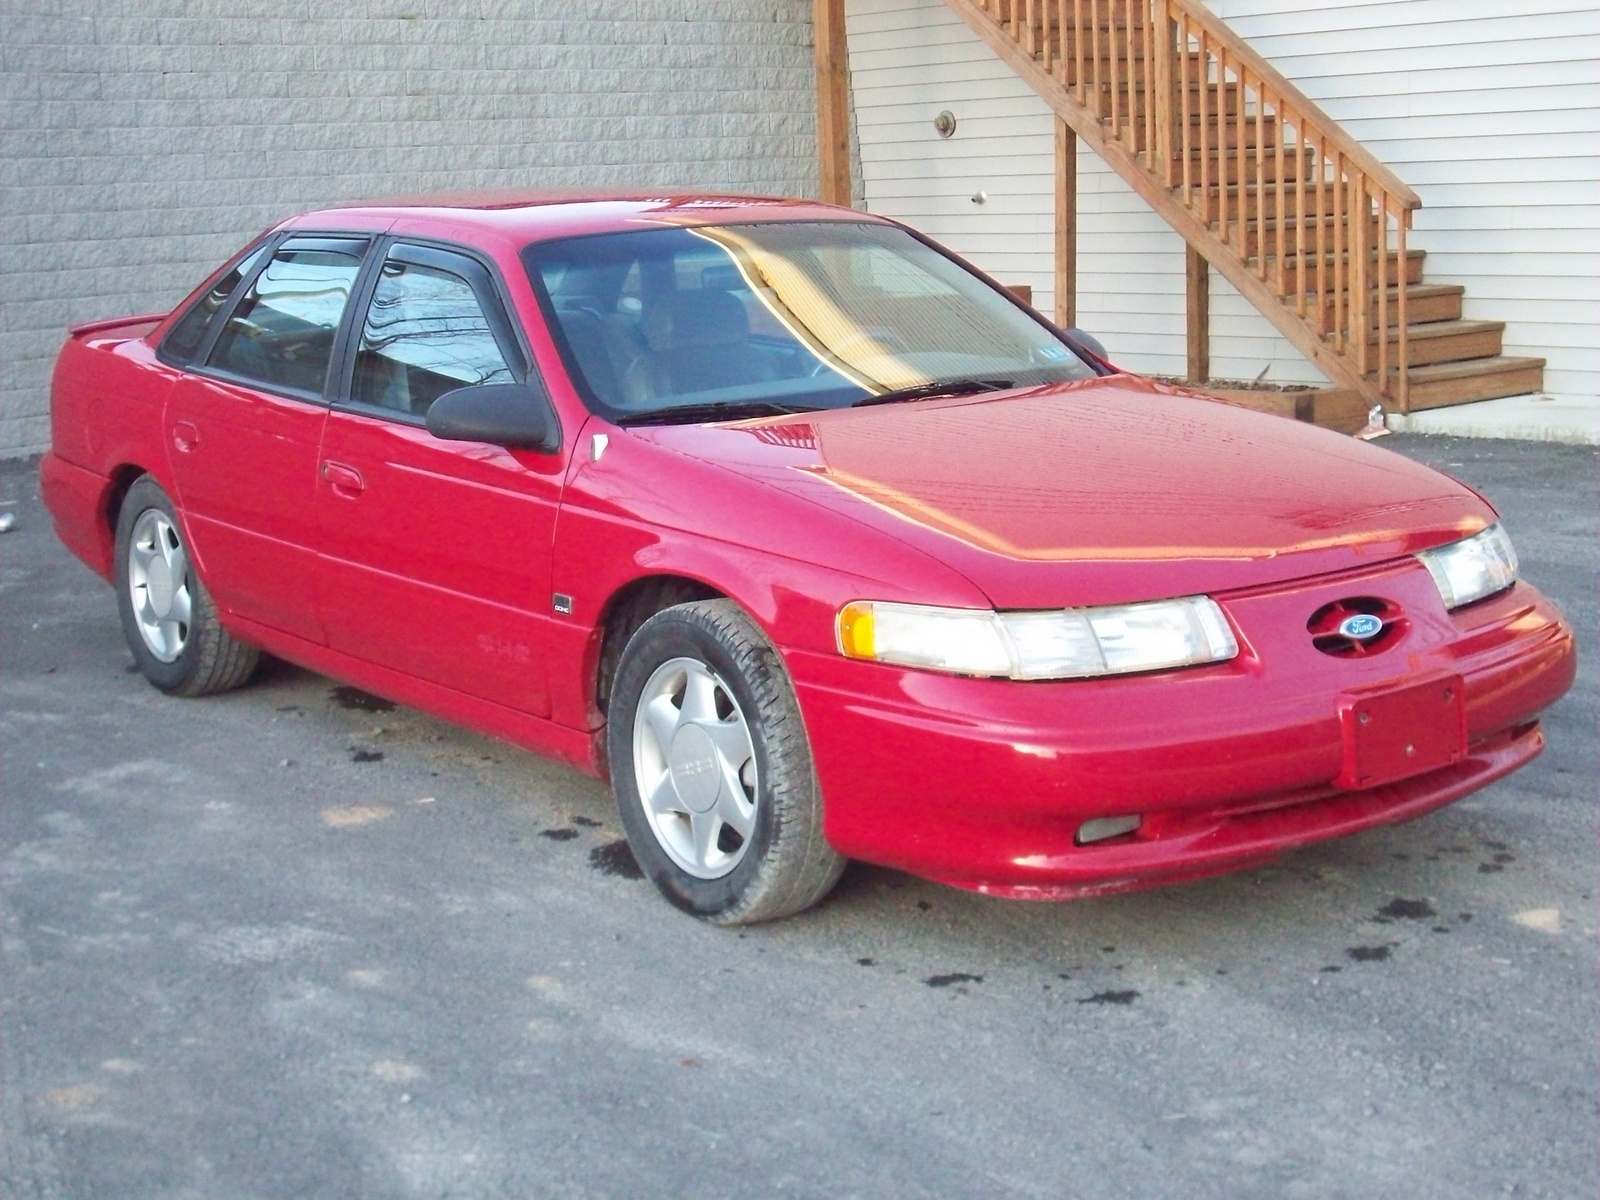 1994 Ford Taurus 4 Dr SHO Sedan picture